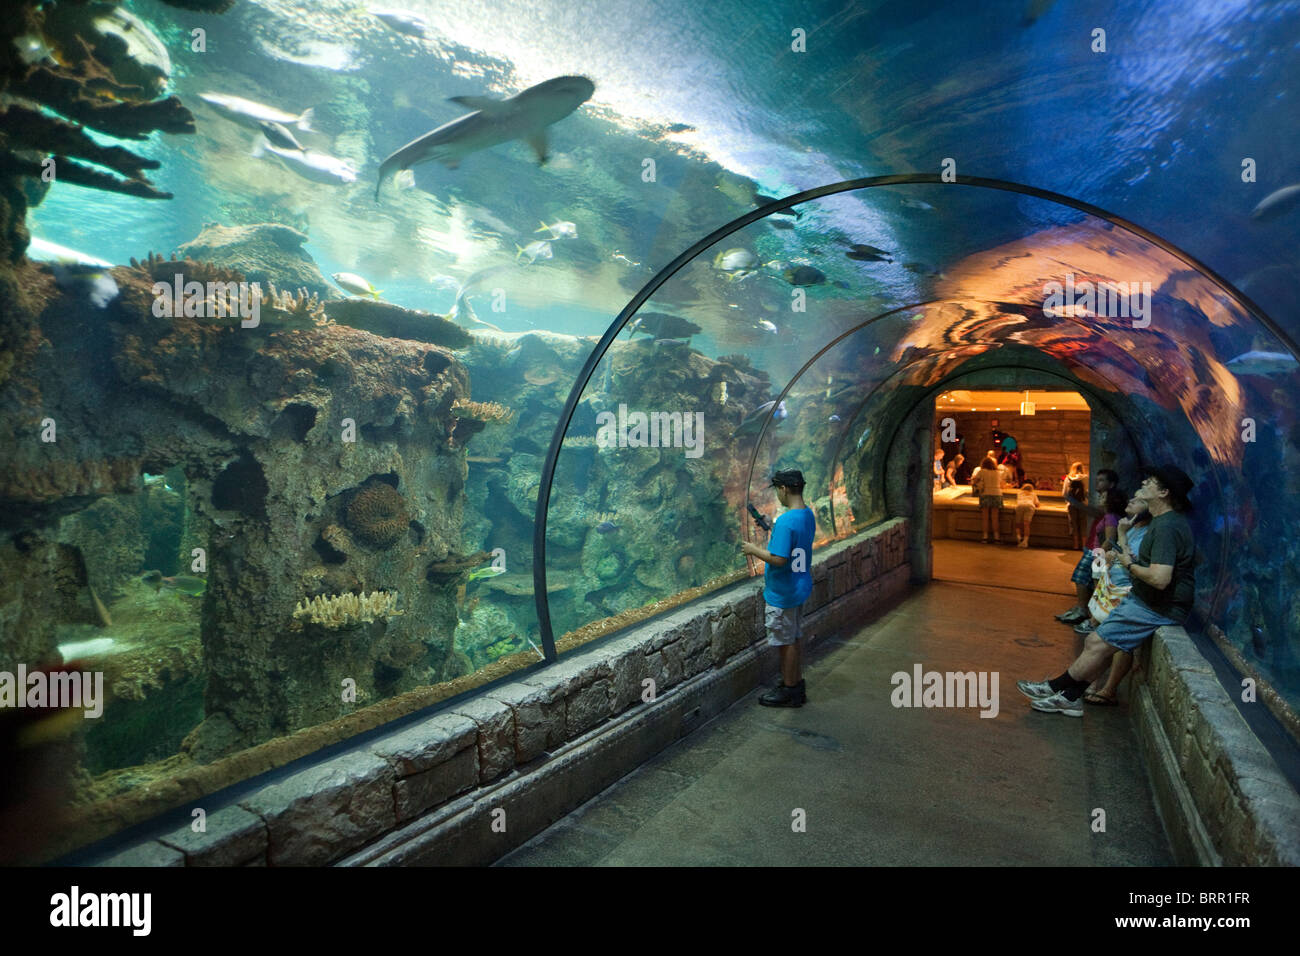 aquarium and sharks stock photos aquarium and sharks stock people in the tunnel watching the sharks shark reef aquarium mandalay bay hotel